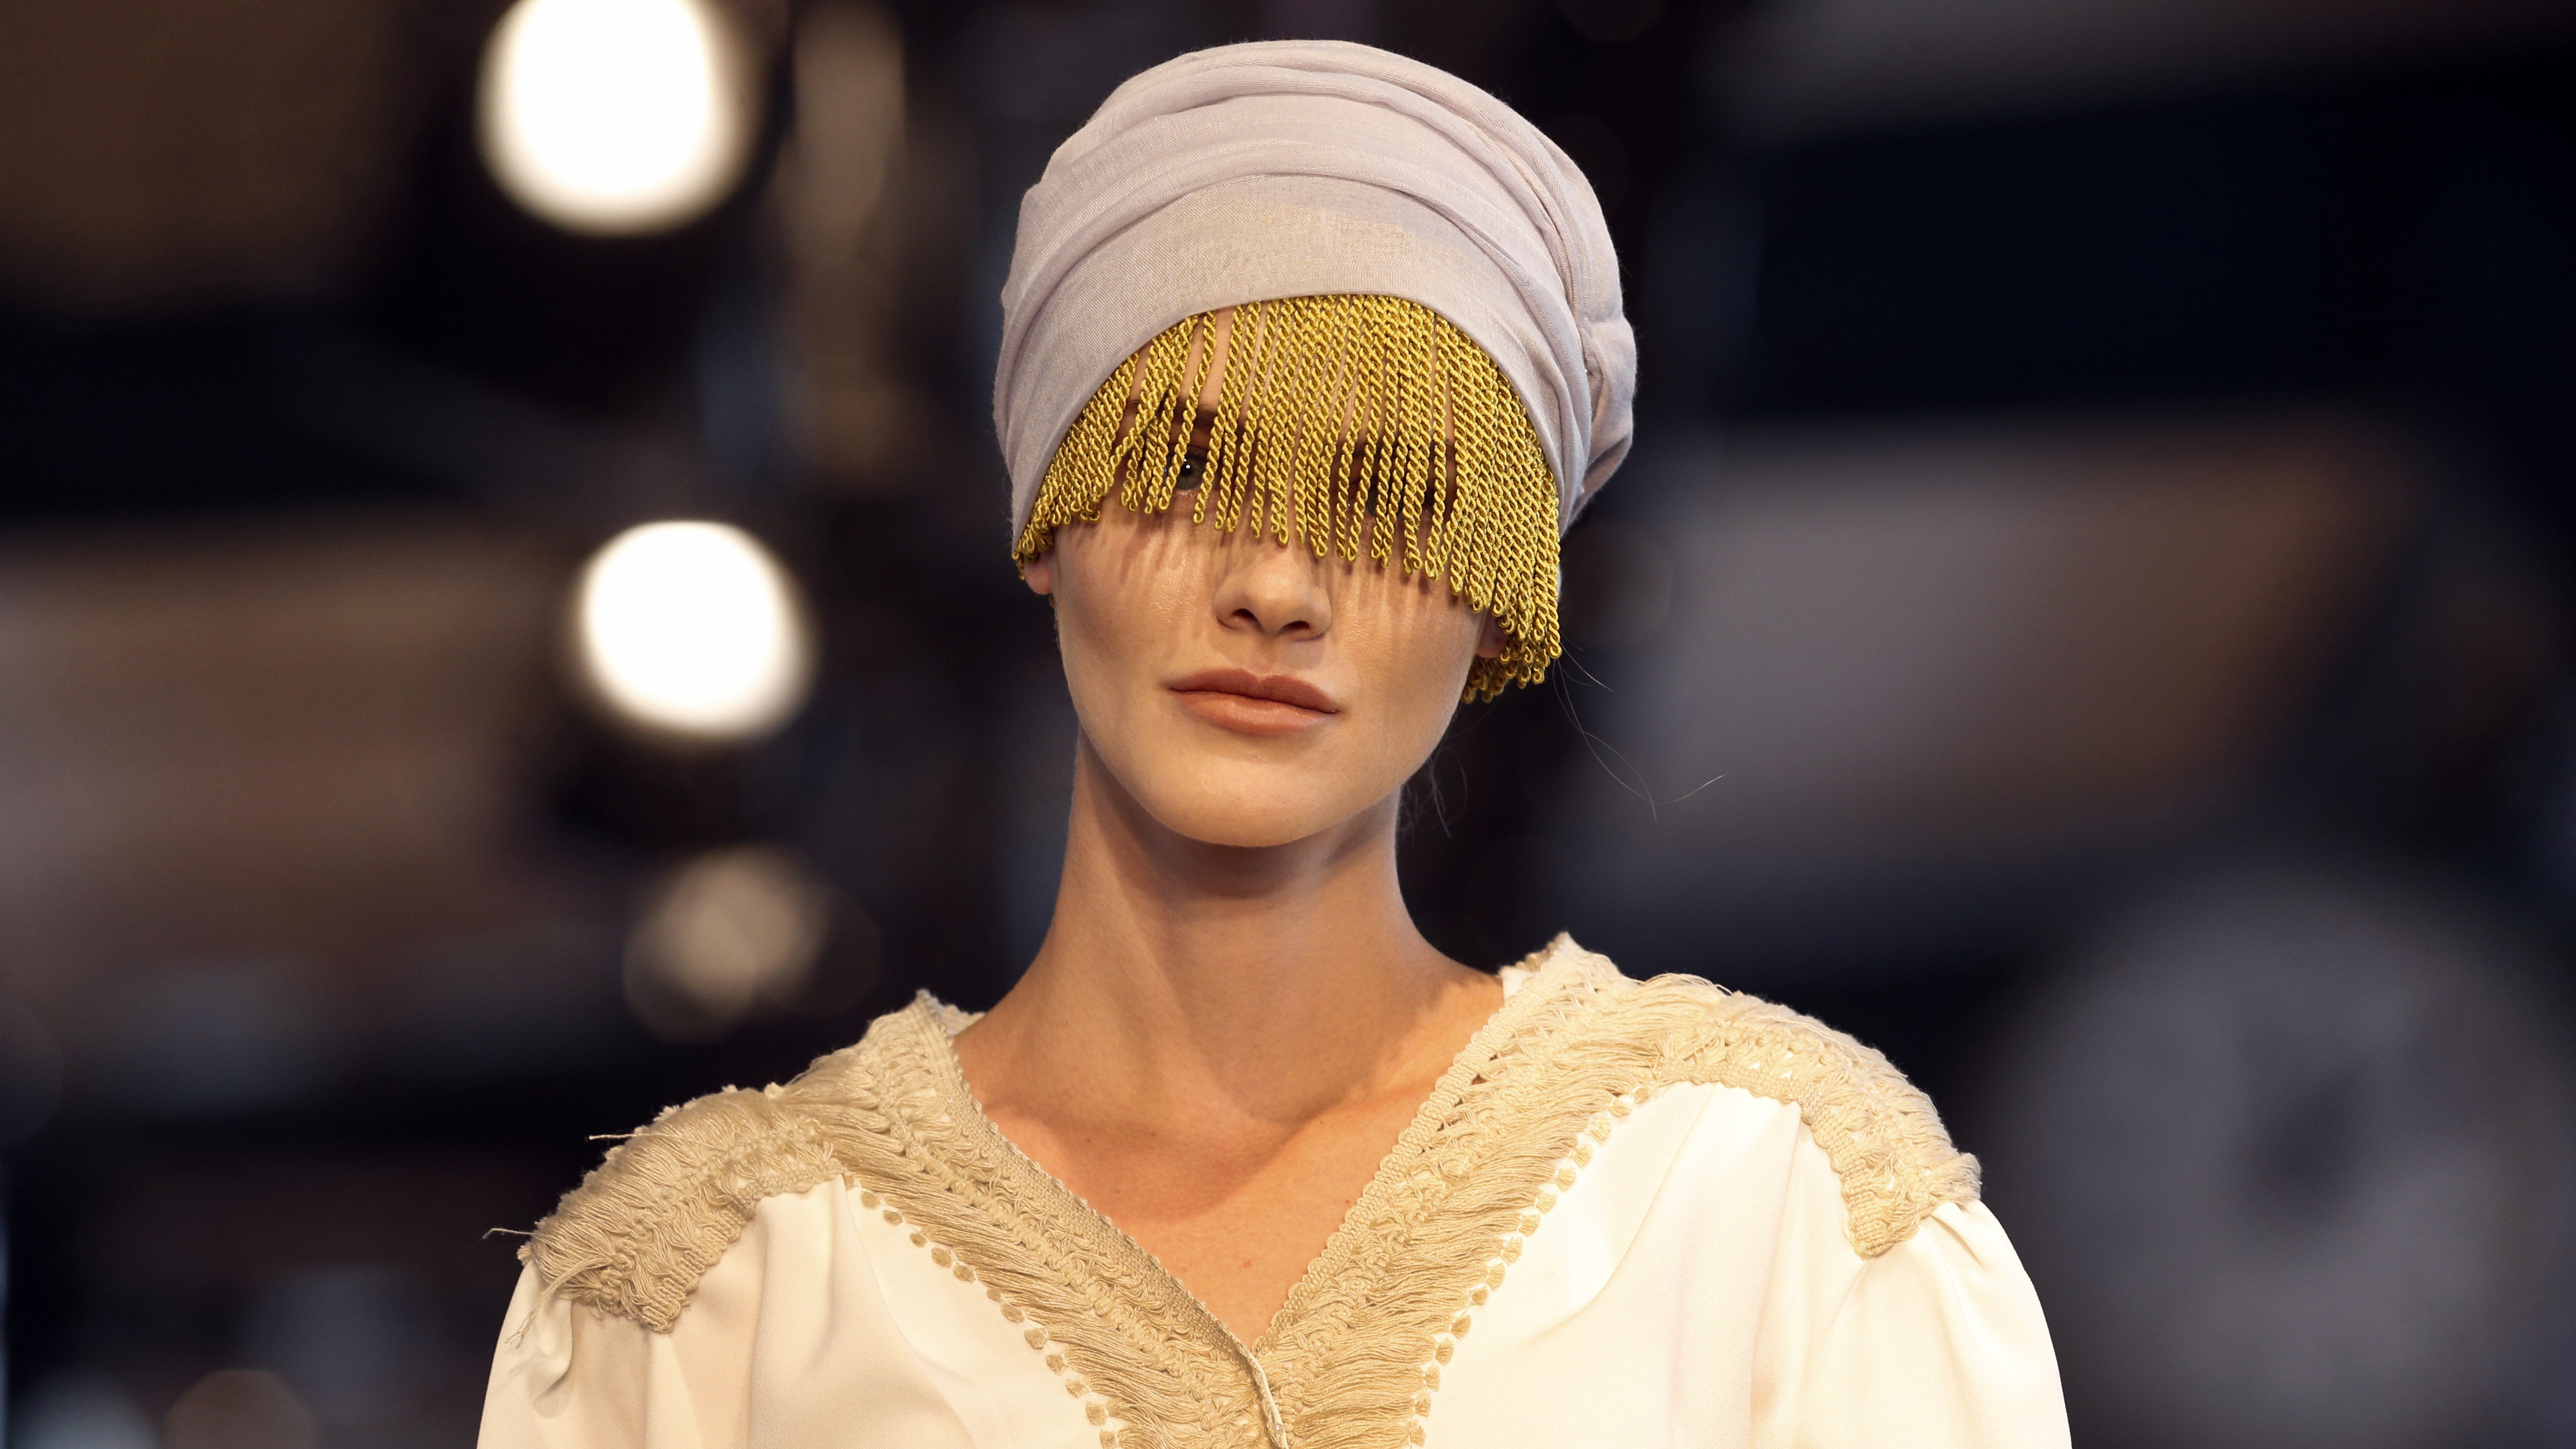 A model hits the runway of a fashion show during the International Modest Fashion Week, in Istanbul, Friday, May, 13, 2016. Turkey's first International Modest Fashion Week has opened in Istanbul bringing designers and models of conservative wear from around the world. The two-day event kicked off Friday with models hitting the runway at a historic train station donning a bright palette of breezy garment and kaleidoscopic headscarves. (AP Photo/Lefteris Pitarakis)